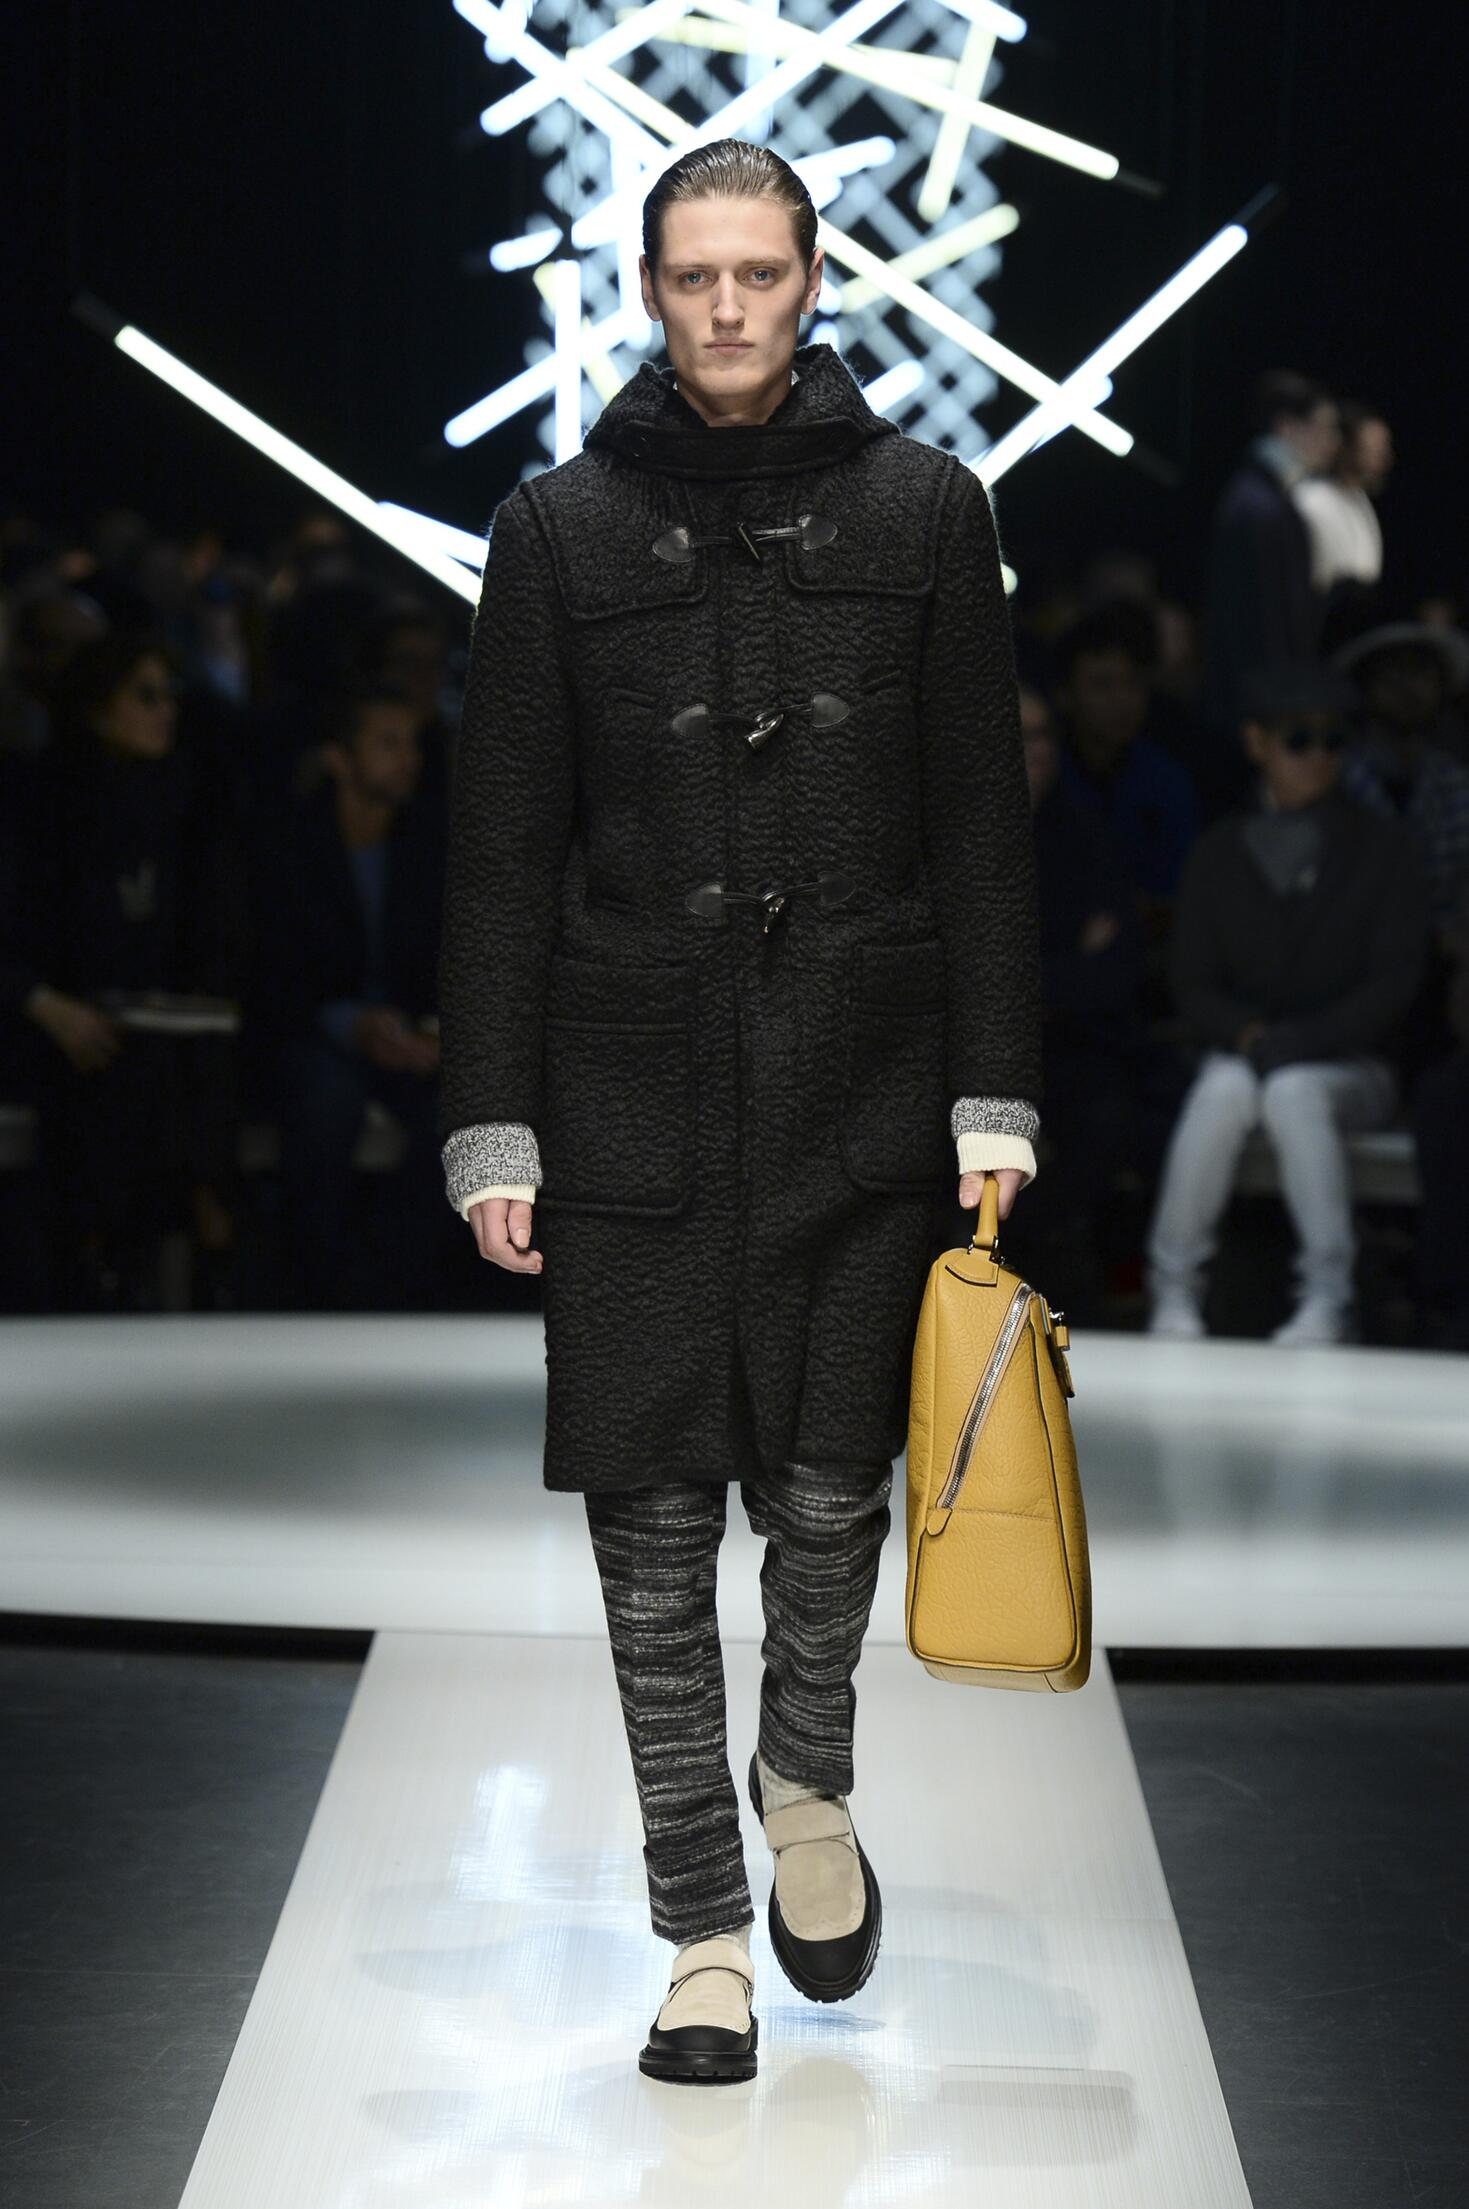 Fashion Model Canali Collection Catwalk